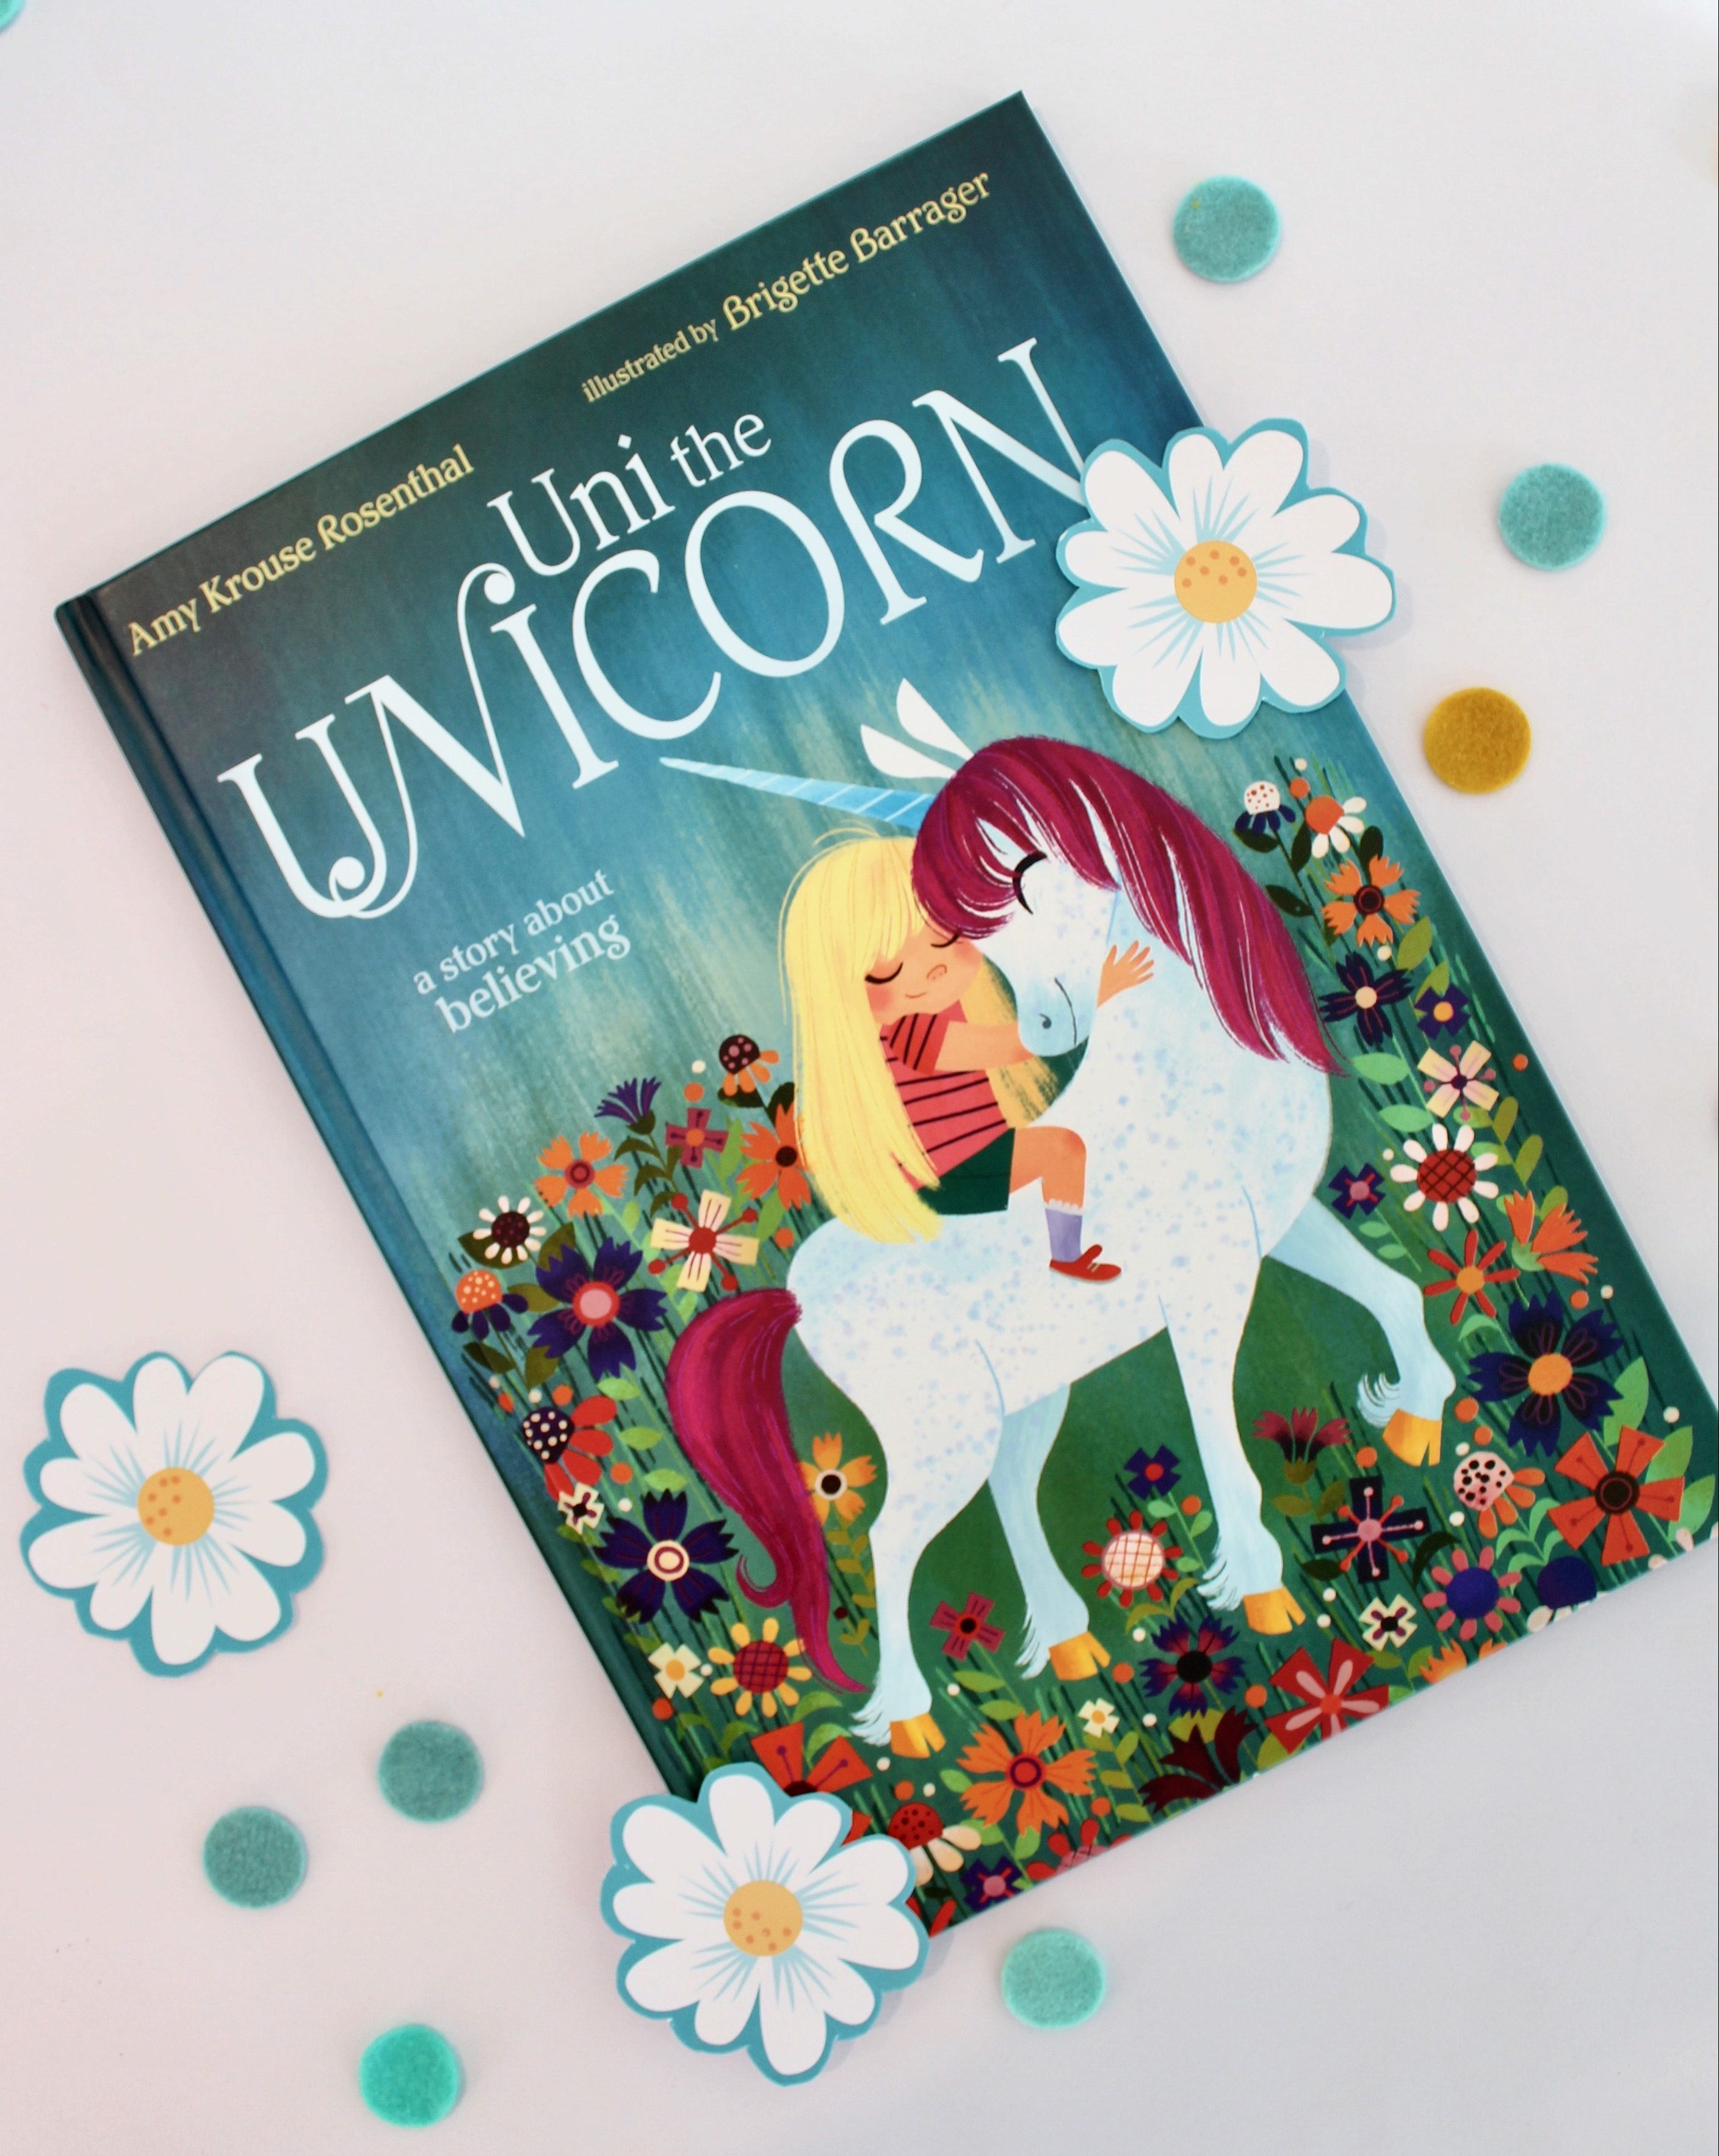 Uni the Unicorn Craft and literacy activities for kids